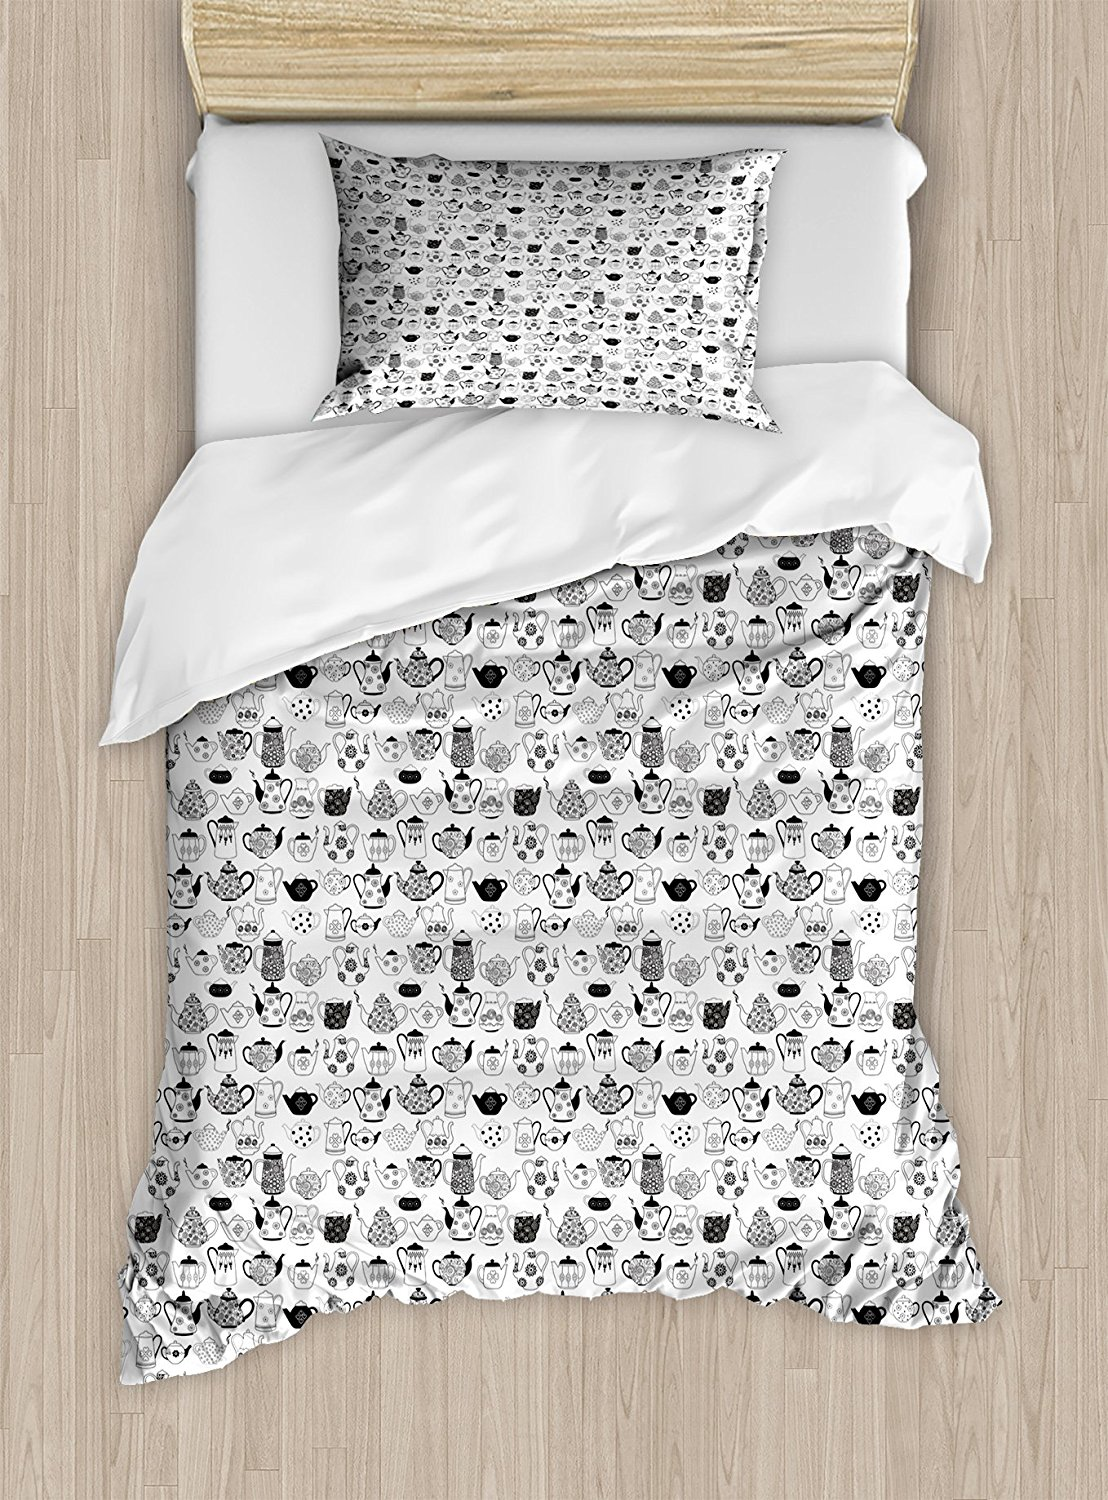 Patterned Duvet Cover Us 113 36 10 Off Tea Party Duvet Cover Set Floral Patterned Cups With Different Designs Monochrome Timeless Kitchenware Decor 4 Piece Bedding Set In